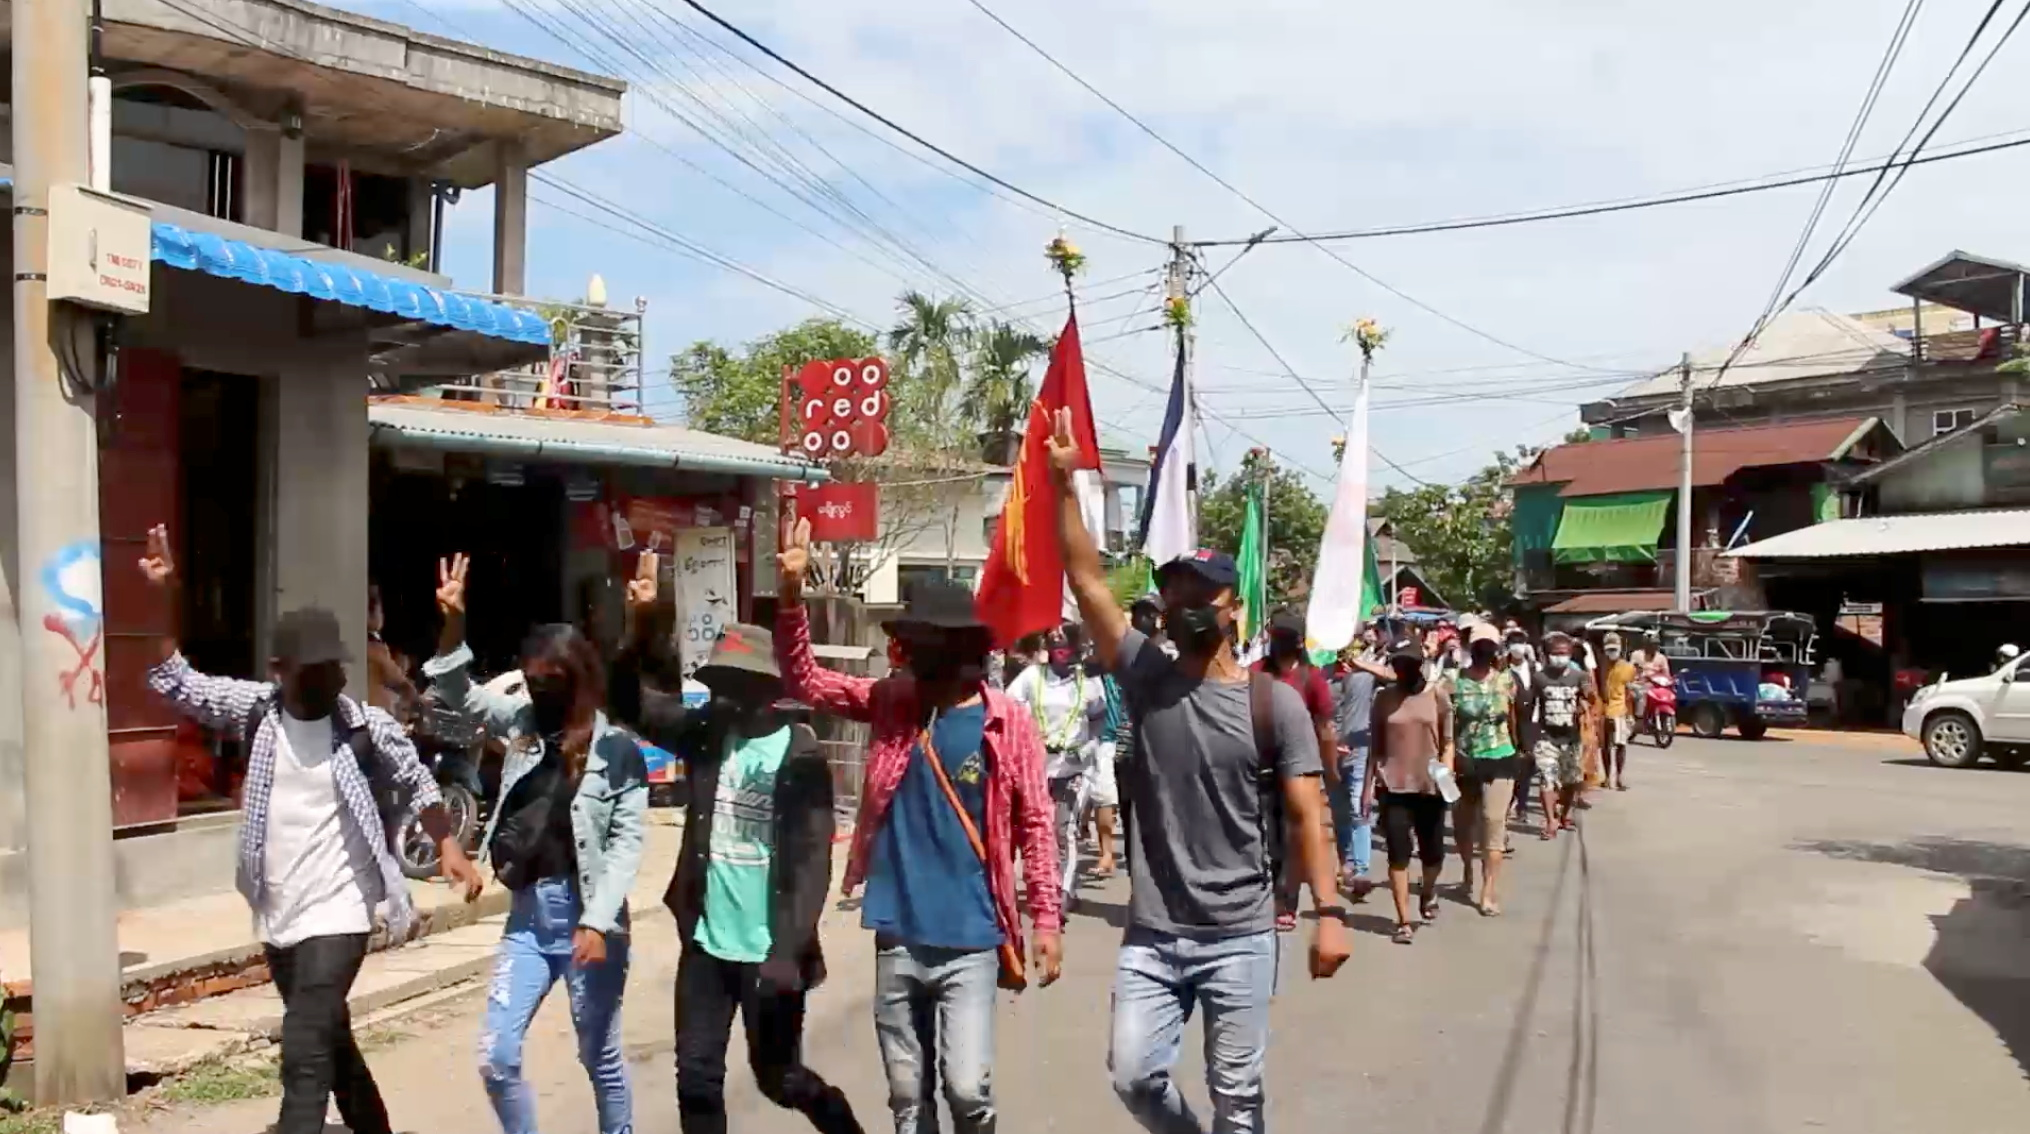 Demonstrators from the Dawei Technological University along with others march to protest against the military coup, in Dawei, Myanmar April 9, 2021 in this still image obtained from a video. Courtesy of Dawei Watch/via REUTERS